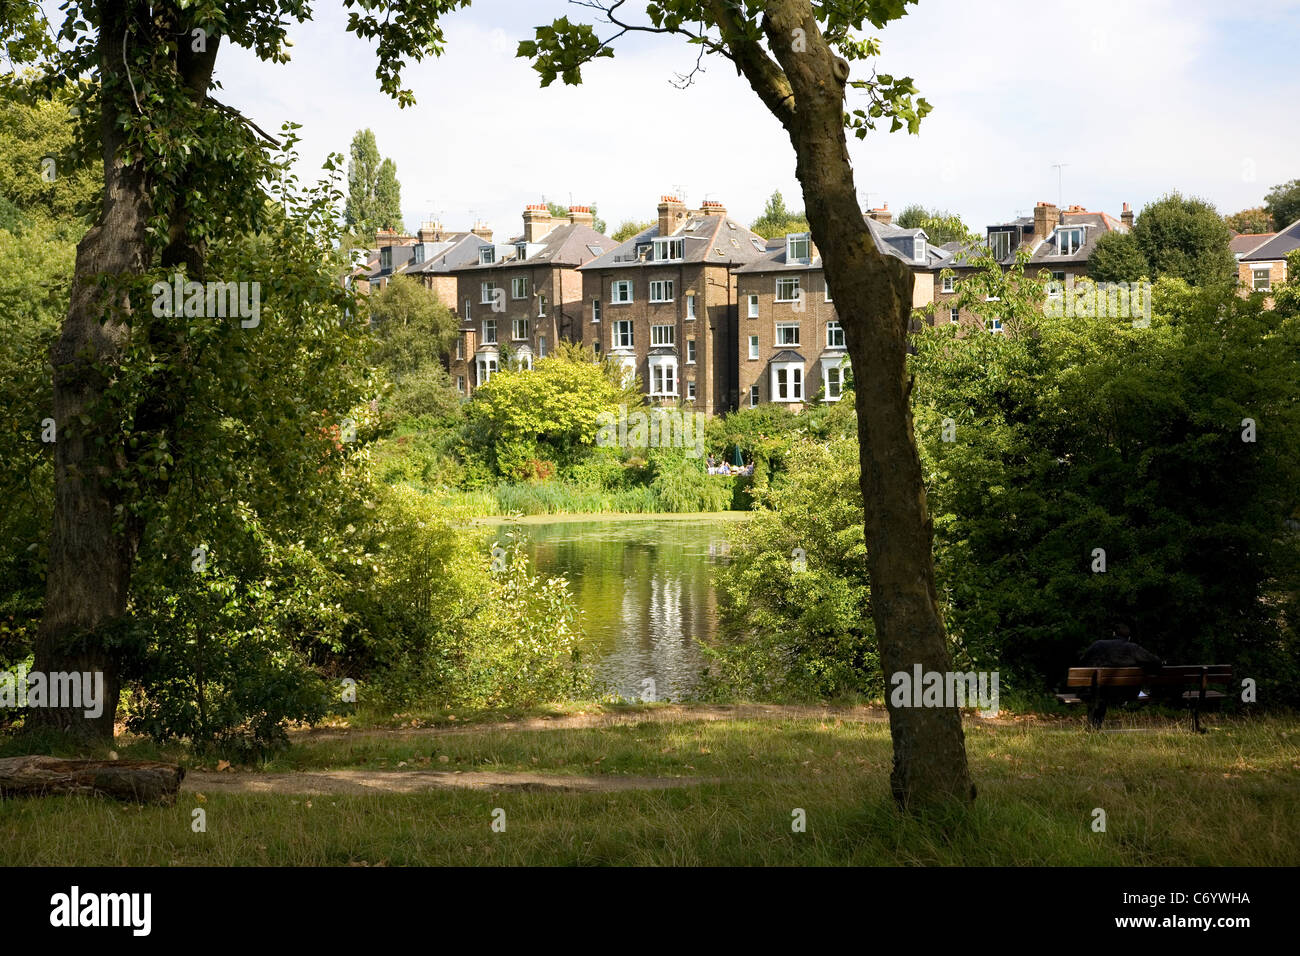 Hampstead Heath with Homes by the pond - Stock Image